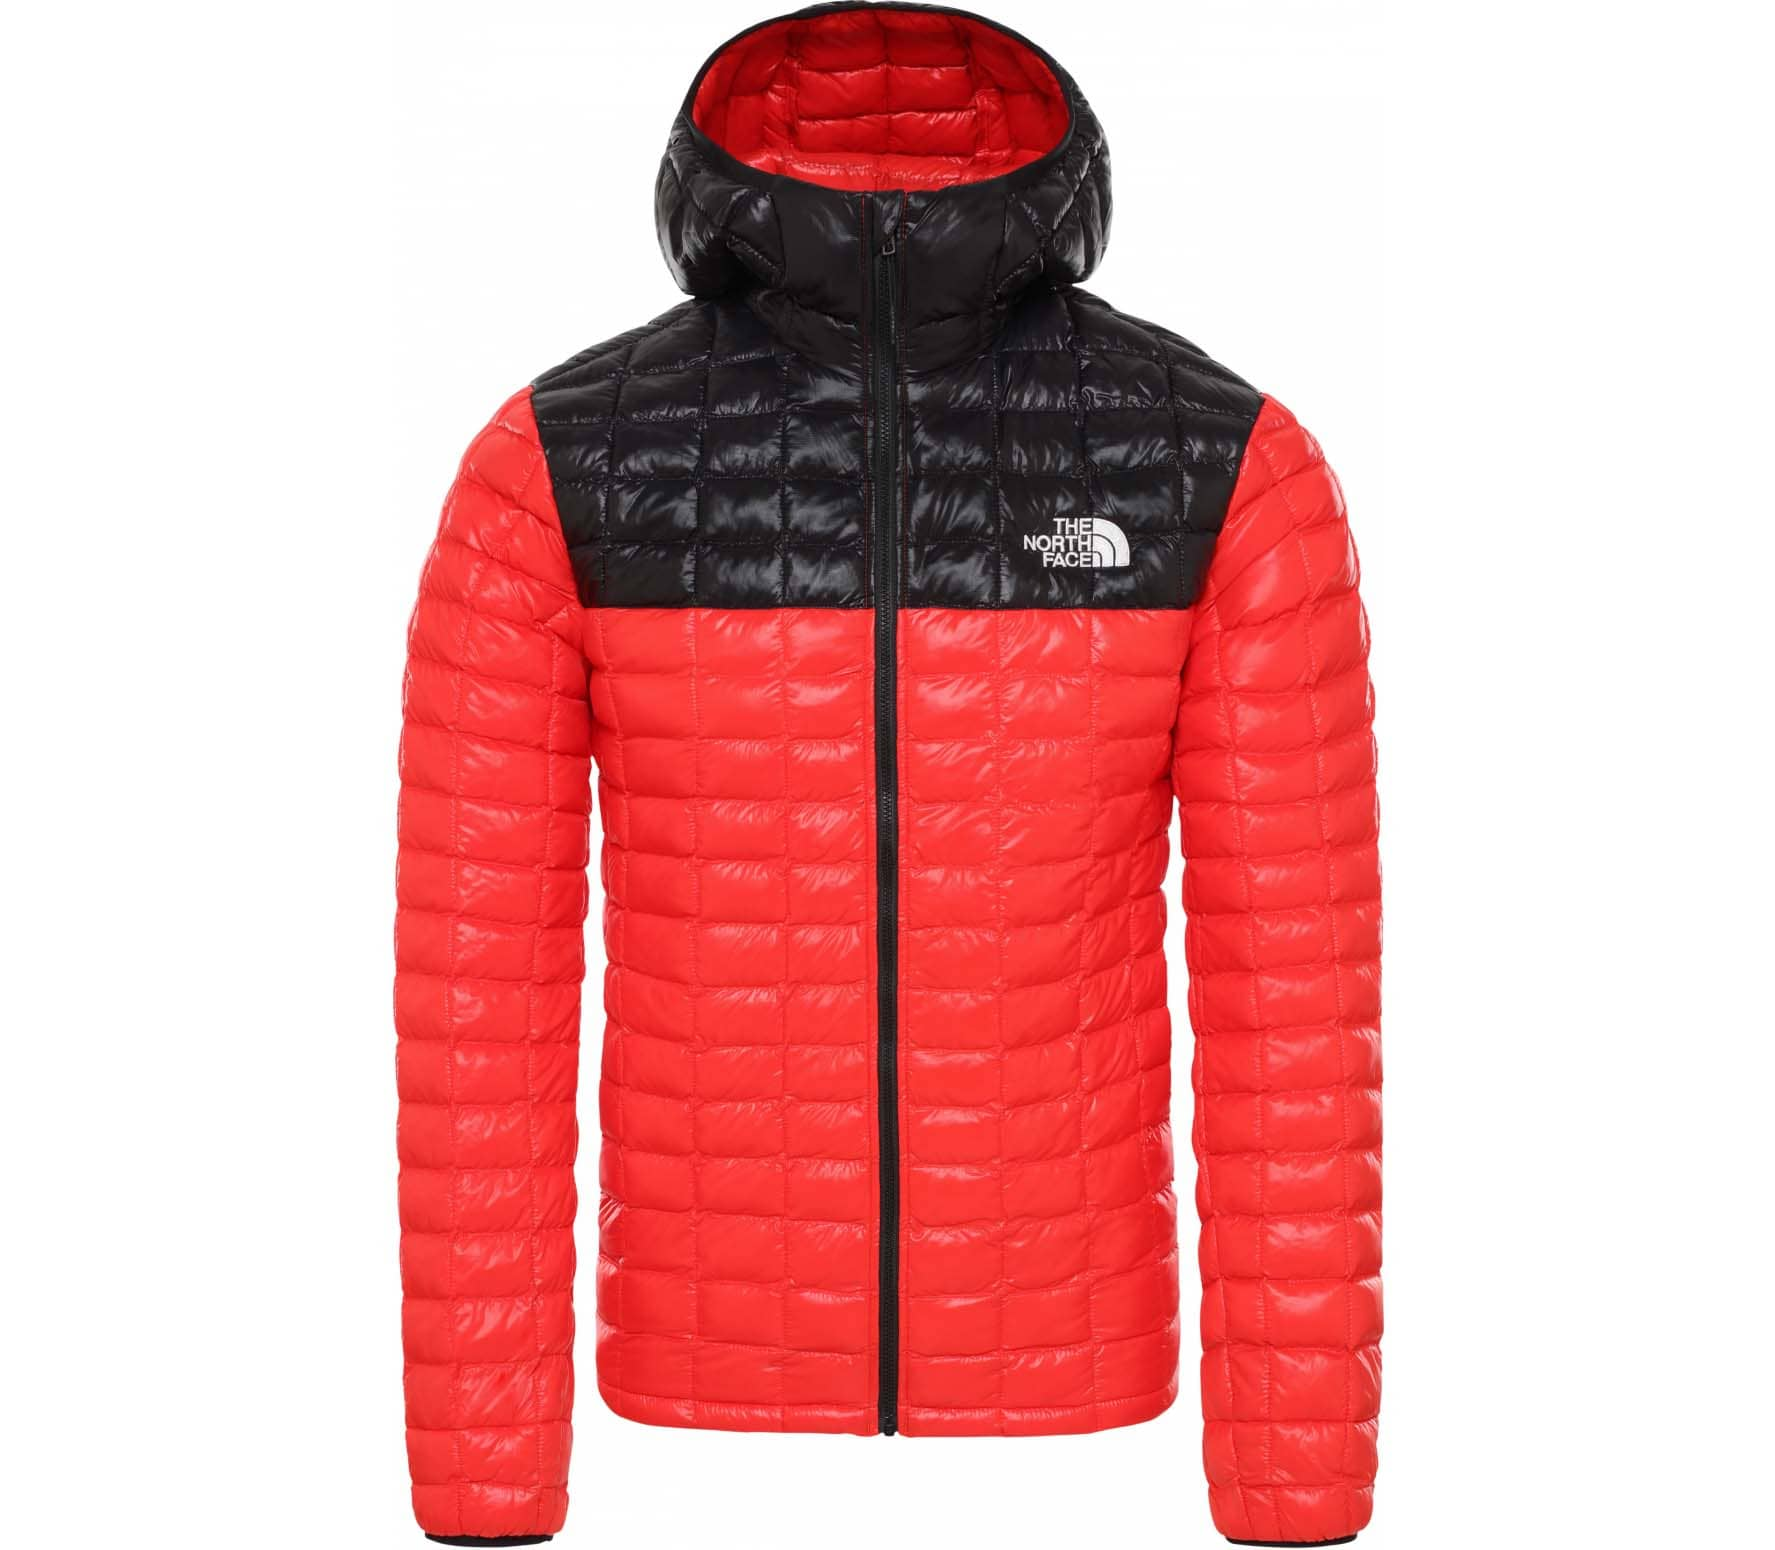 84566b1d1 The North Face TBLL ECO Men Insulated Jacket red